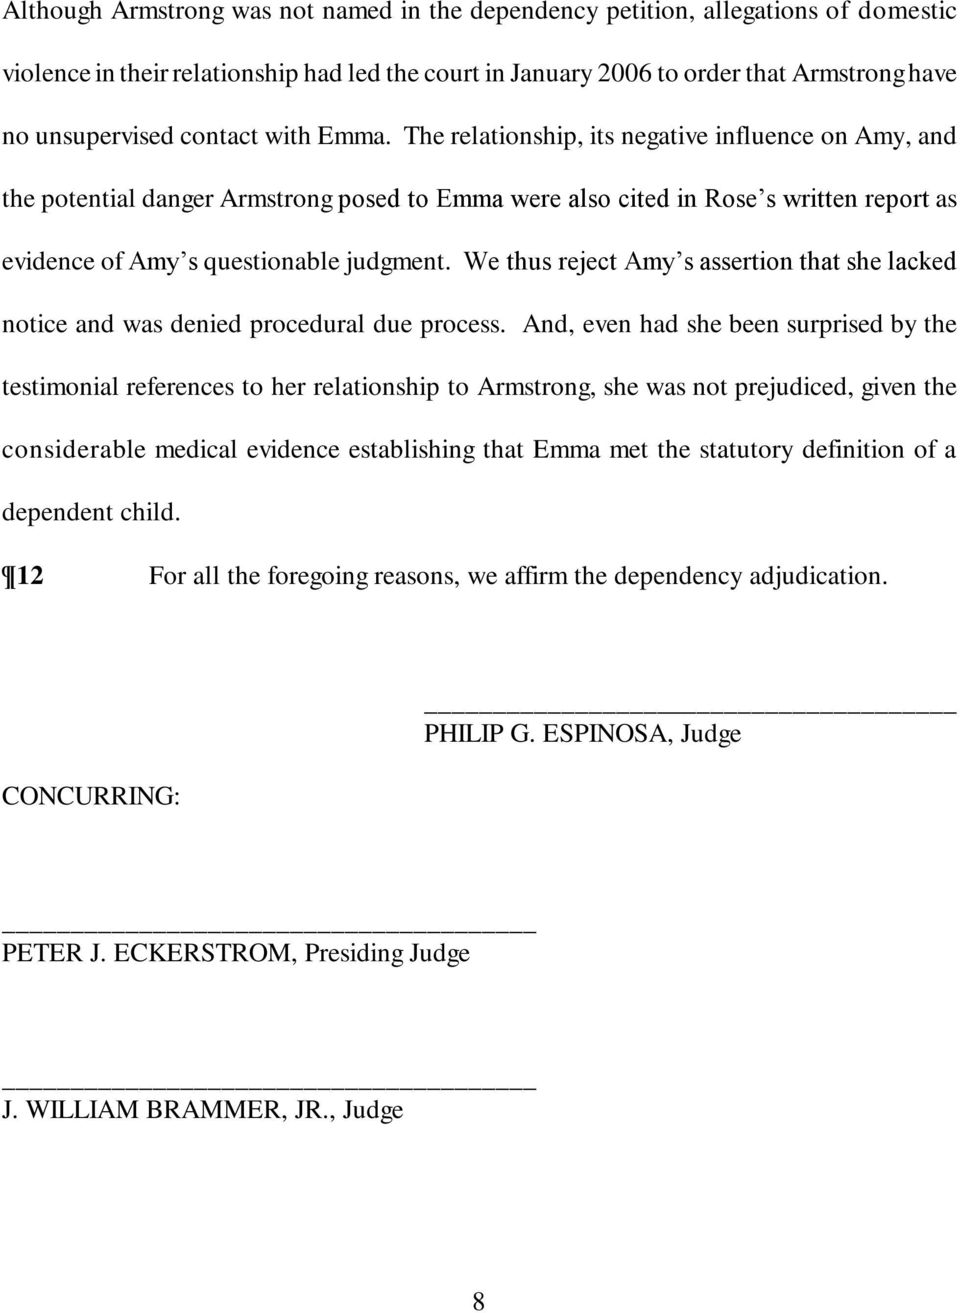 The relationship, its negative influence on Amy, and the potential danger Armstrong posed to Emma were also cited in Rose s written report as evidence of Amy s questionable judgment.